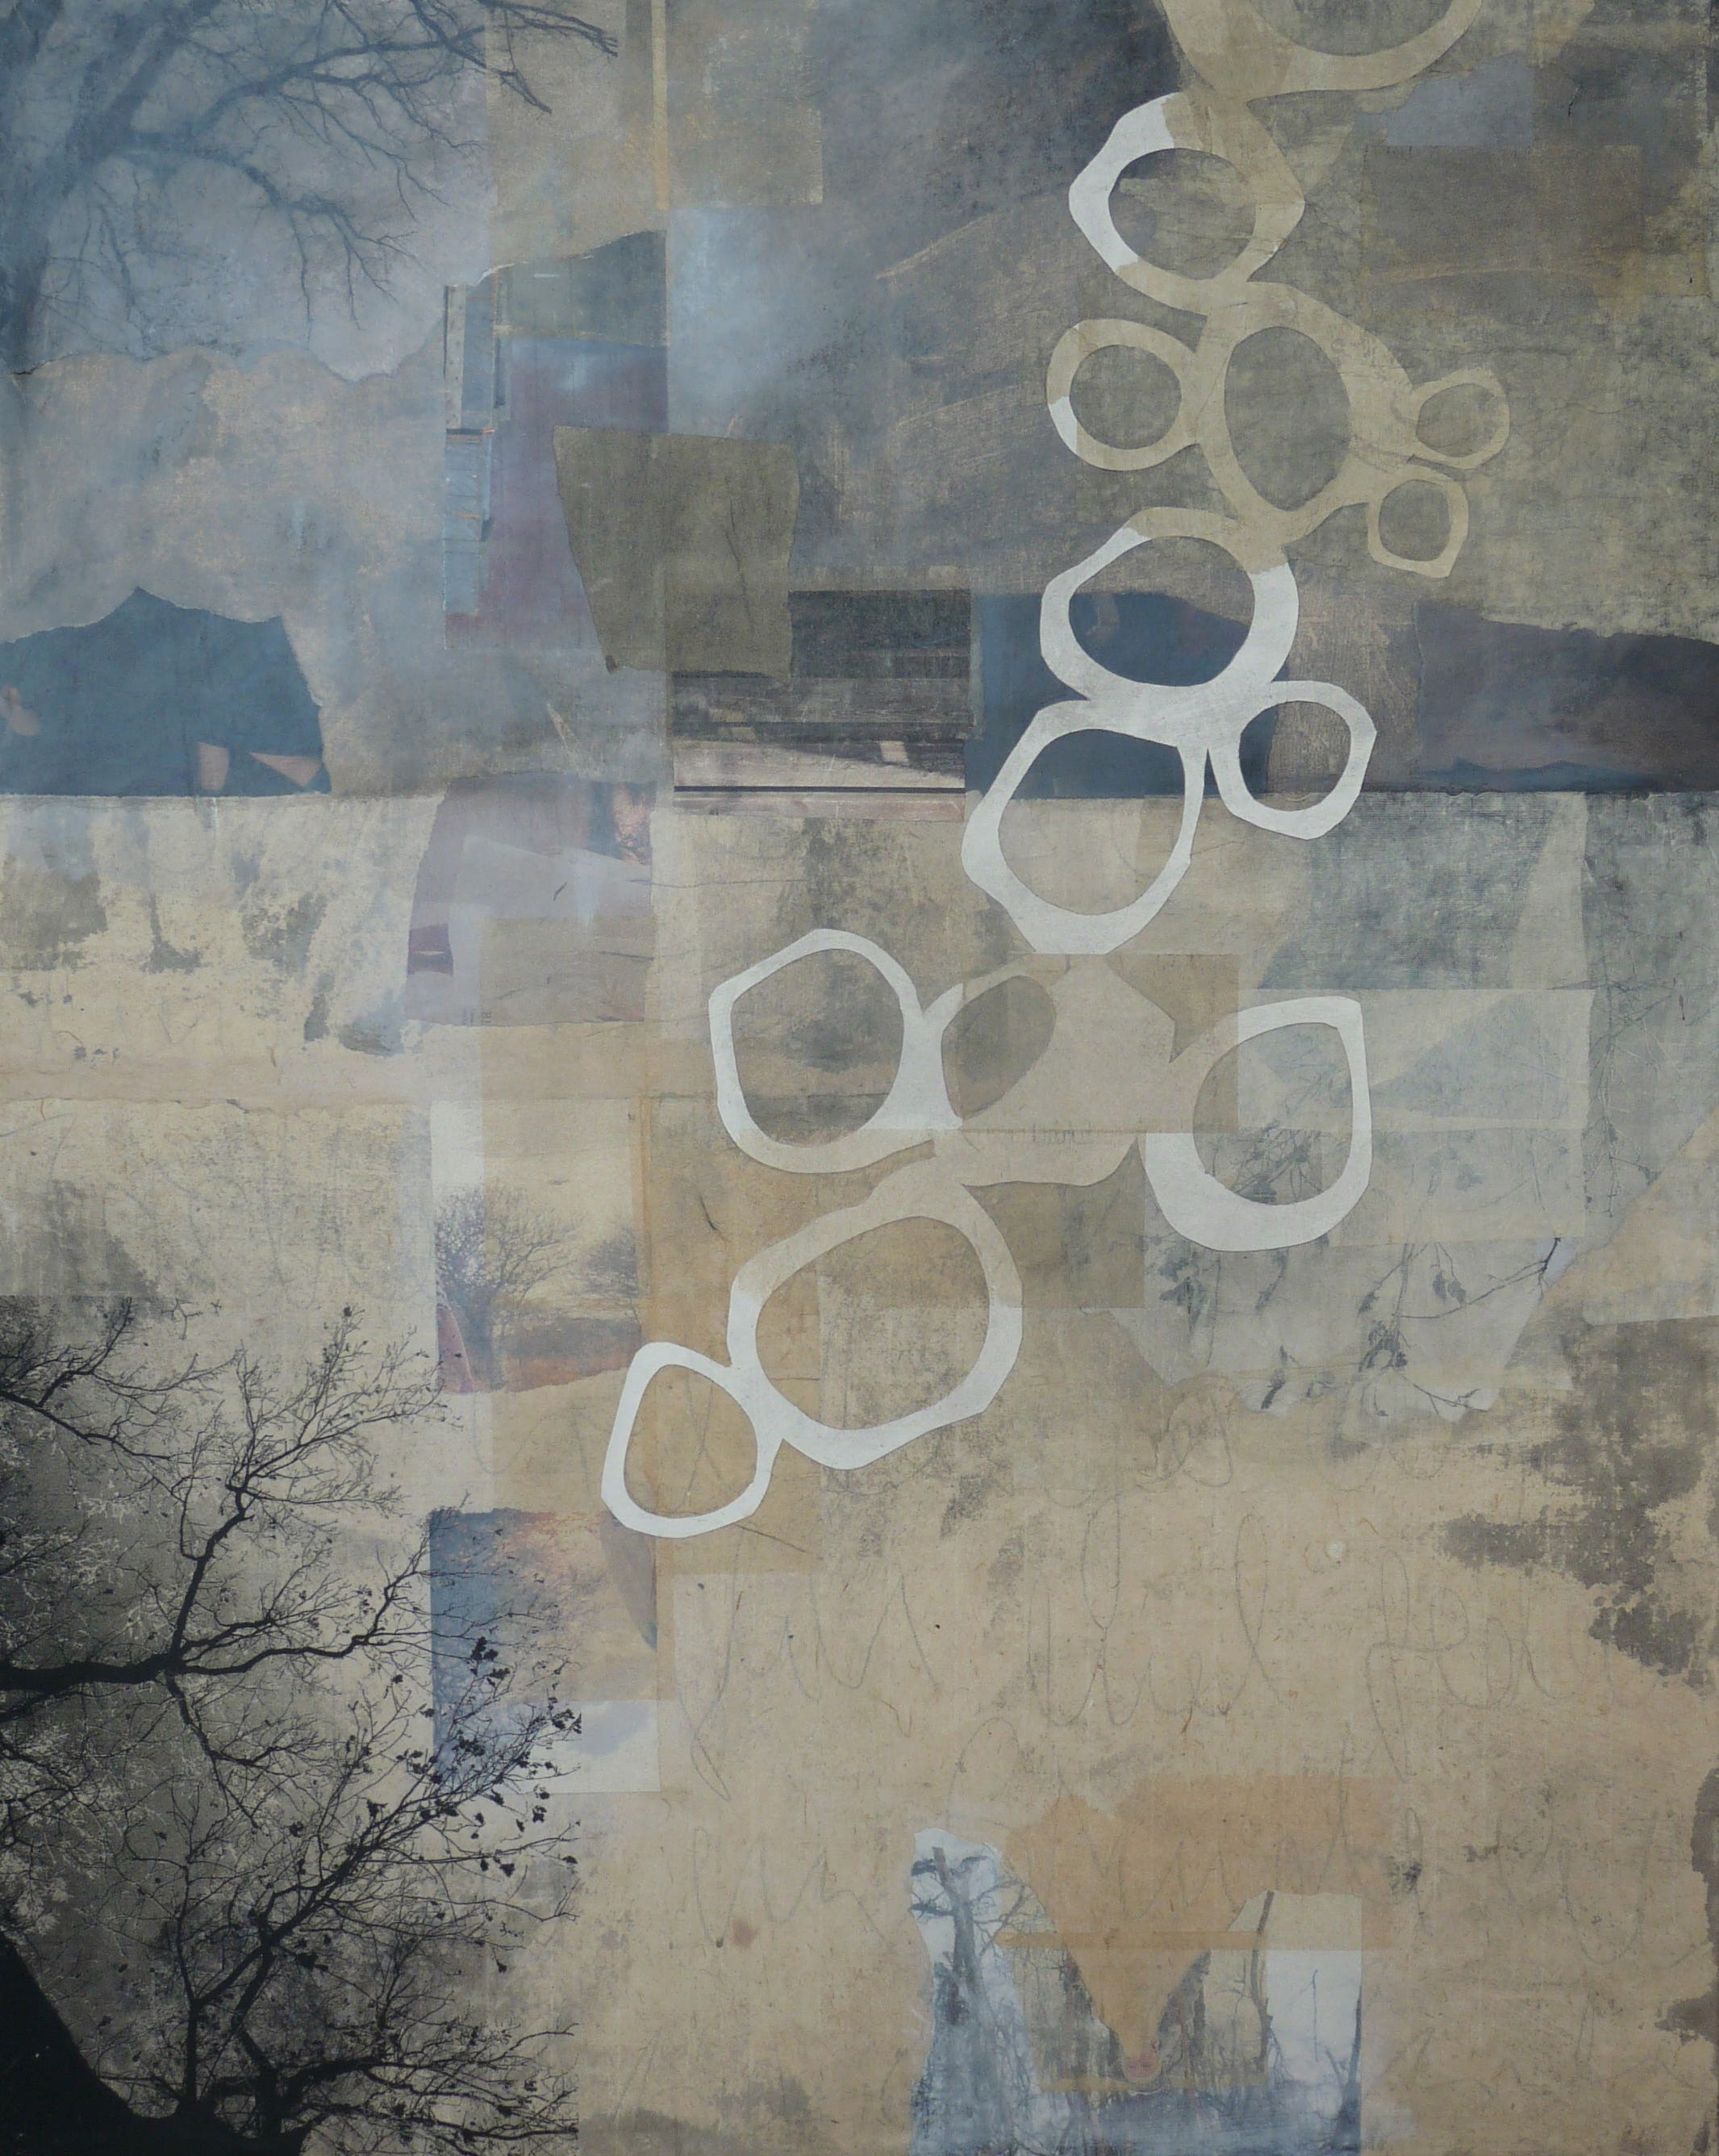 Collage on canvas with white abstract shapes and tress